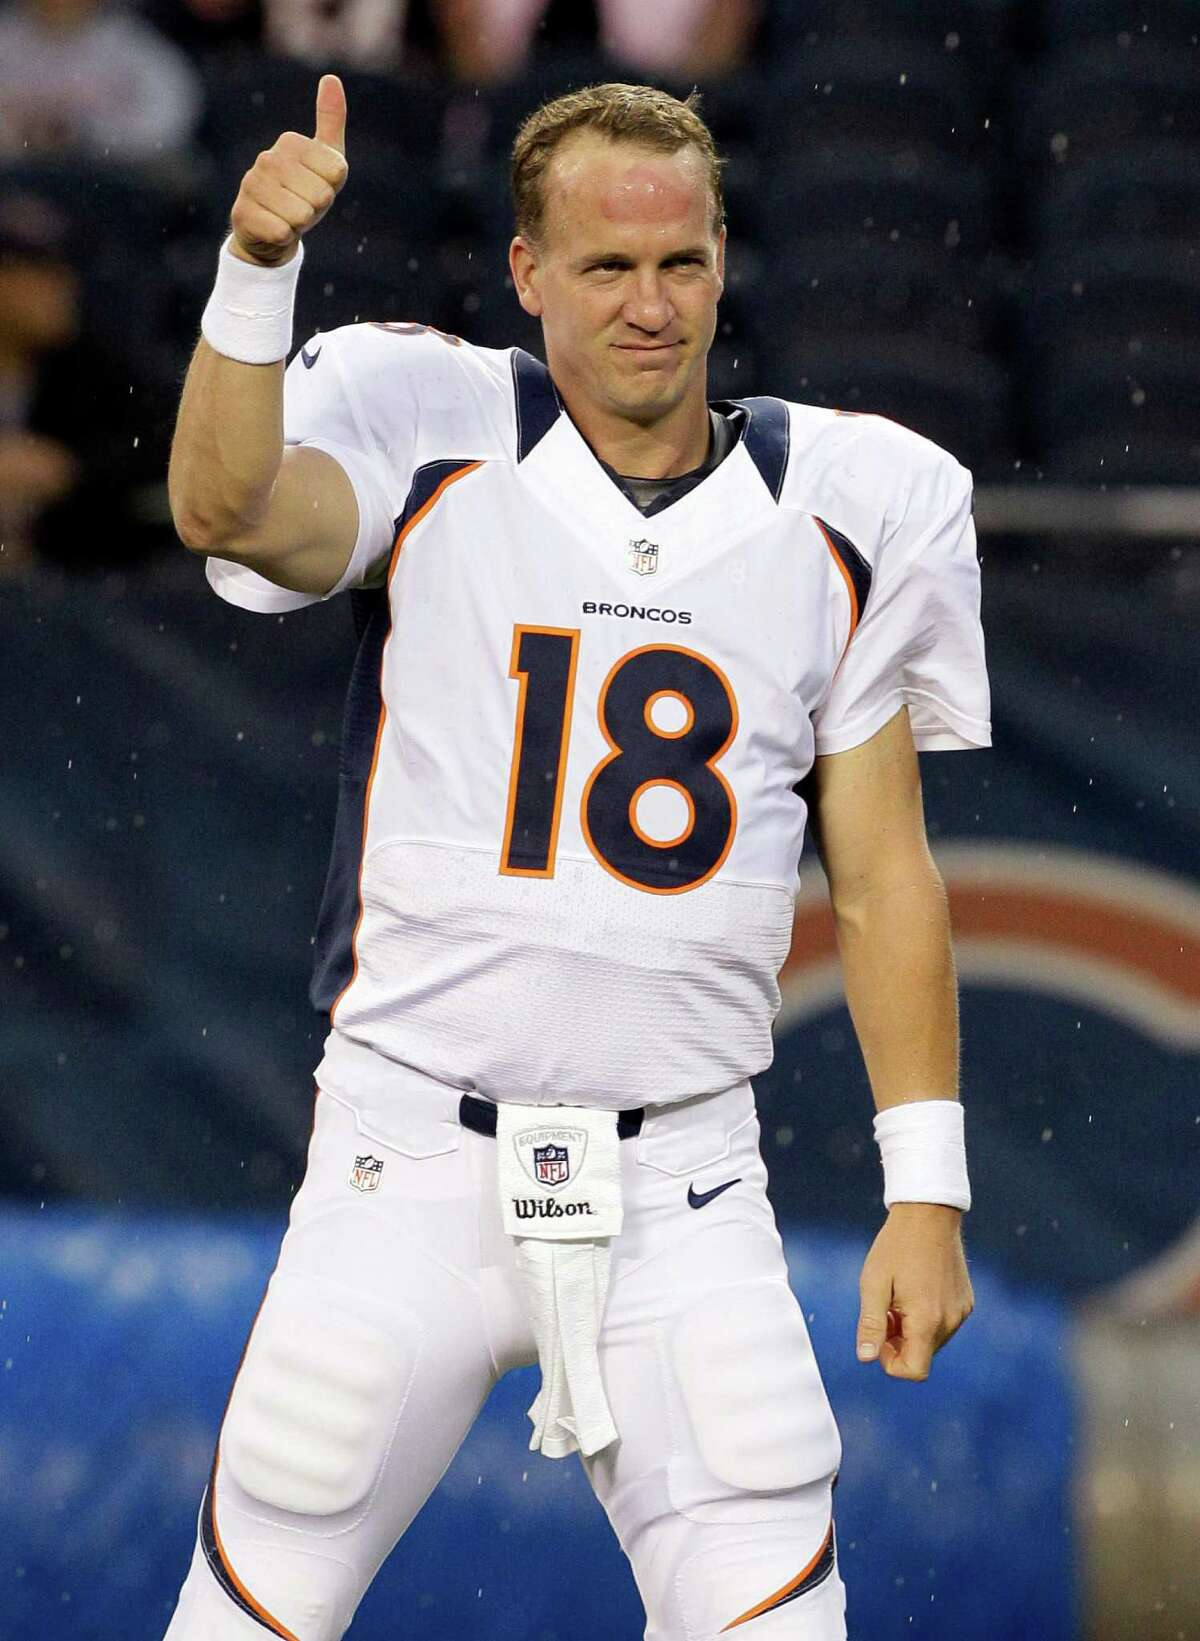 FILE - In this Aug. 9, 2012 file photo, Denver Broncos quarterback Peyton Manning gestures before an NFL preseason football game against the Chicago Bears, in Chicago. A person with knowledge of the results tells The Associated Press that Manning has passed his physical on his surgically repaired neck, clearing the way for him to play in 2014. In what was considered the final formality for his return, Manning passed the exam as required by his contract that will pay him $20 million next season, according to the person who spoke on condition of anonymity because (AP Photo/Nam Y. Huh, File) ORG XMIT: NY163